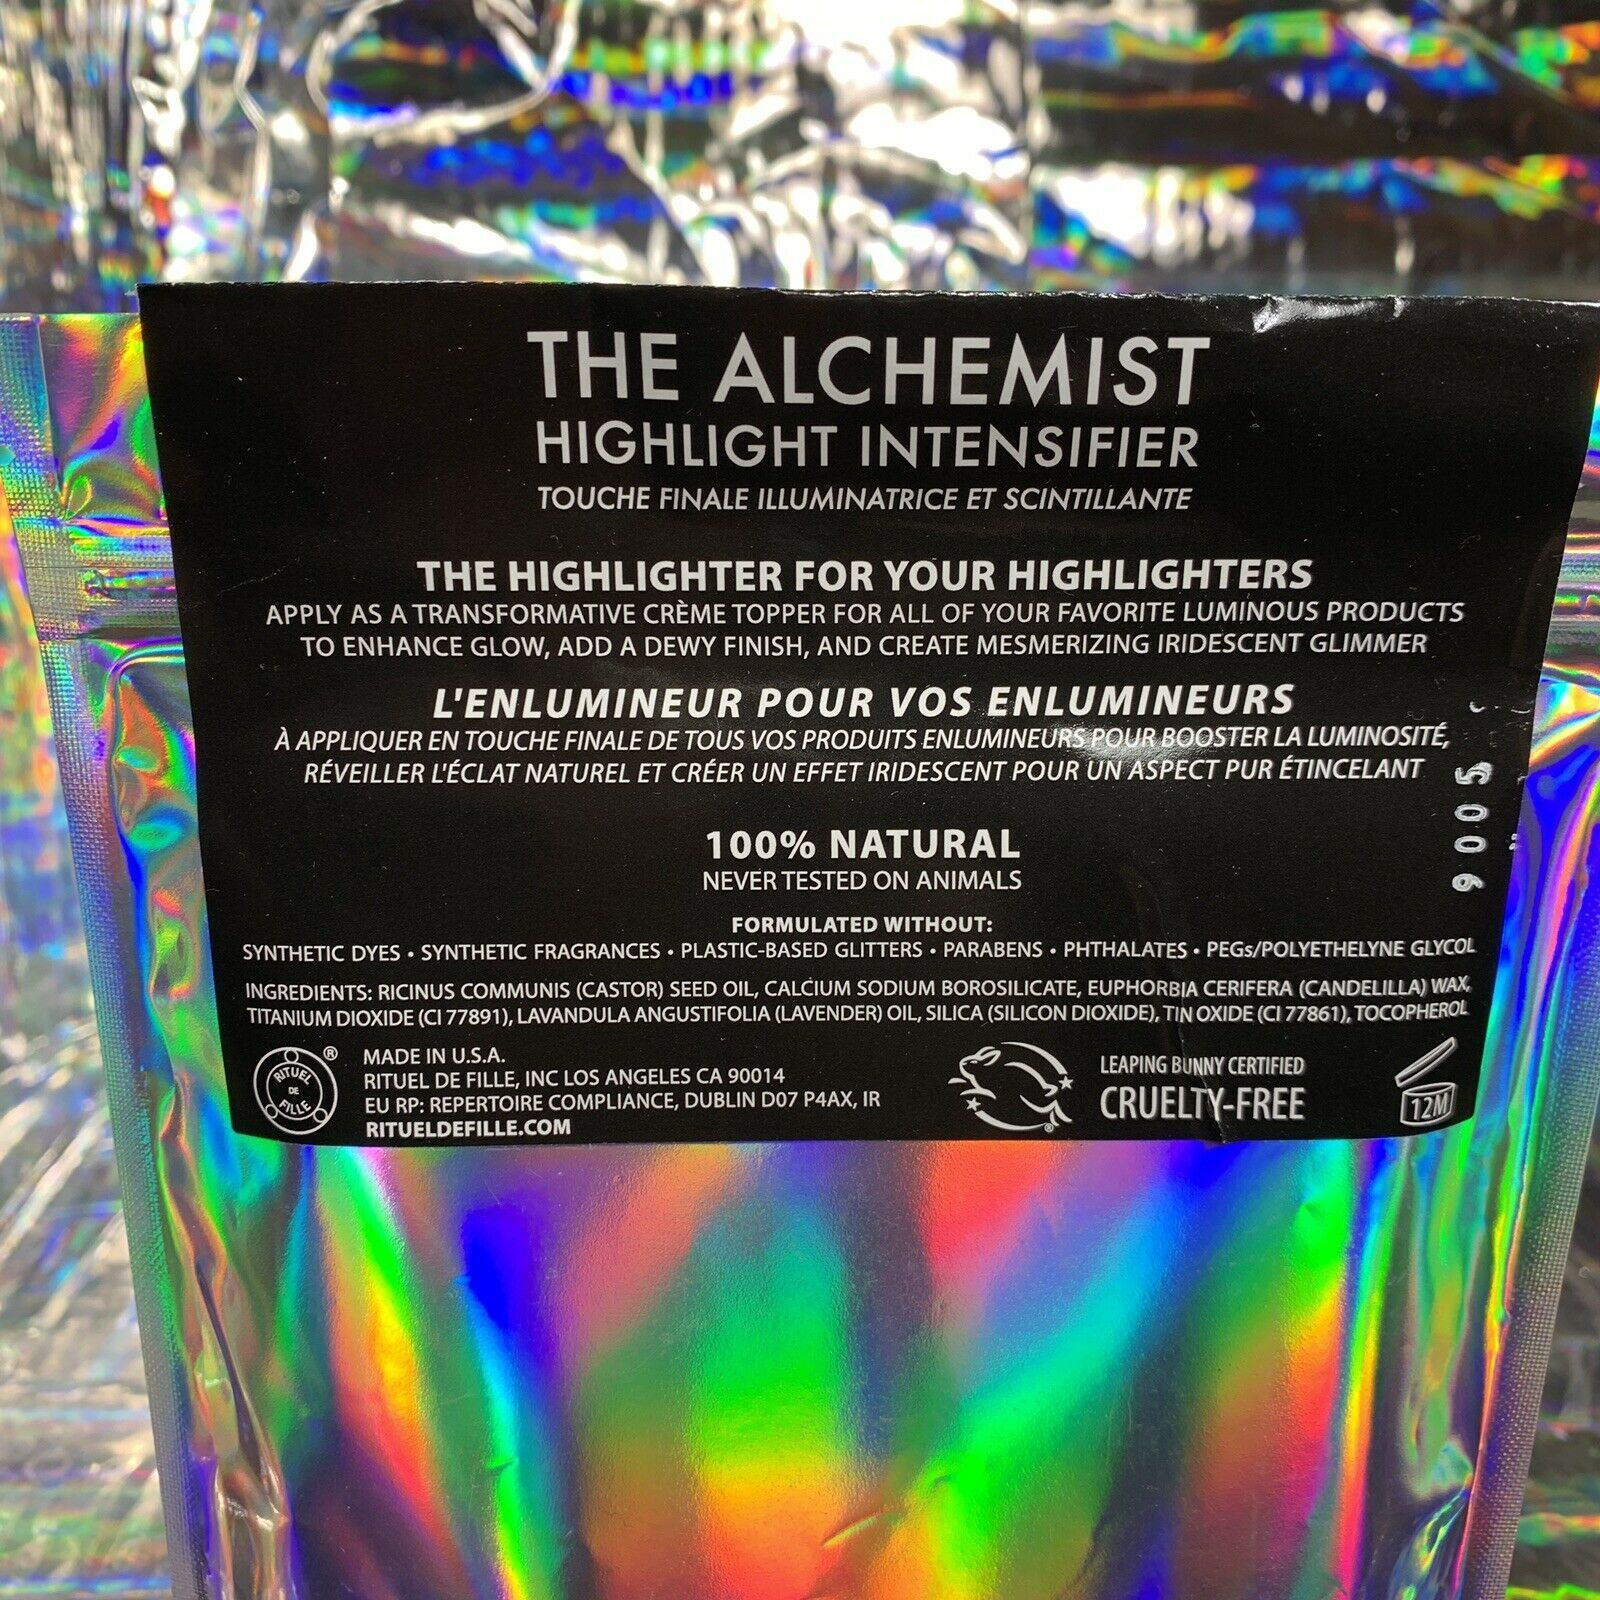 NWT Rituel De Fille The Alchemist Highlight Intensifier $22UPS1DayAir/$6USPS